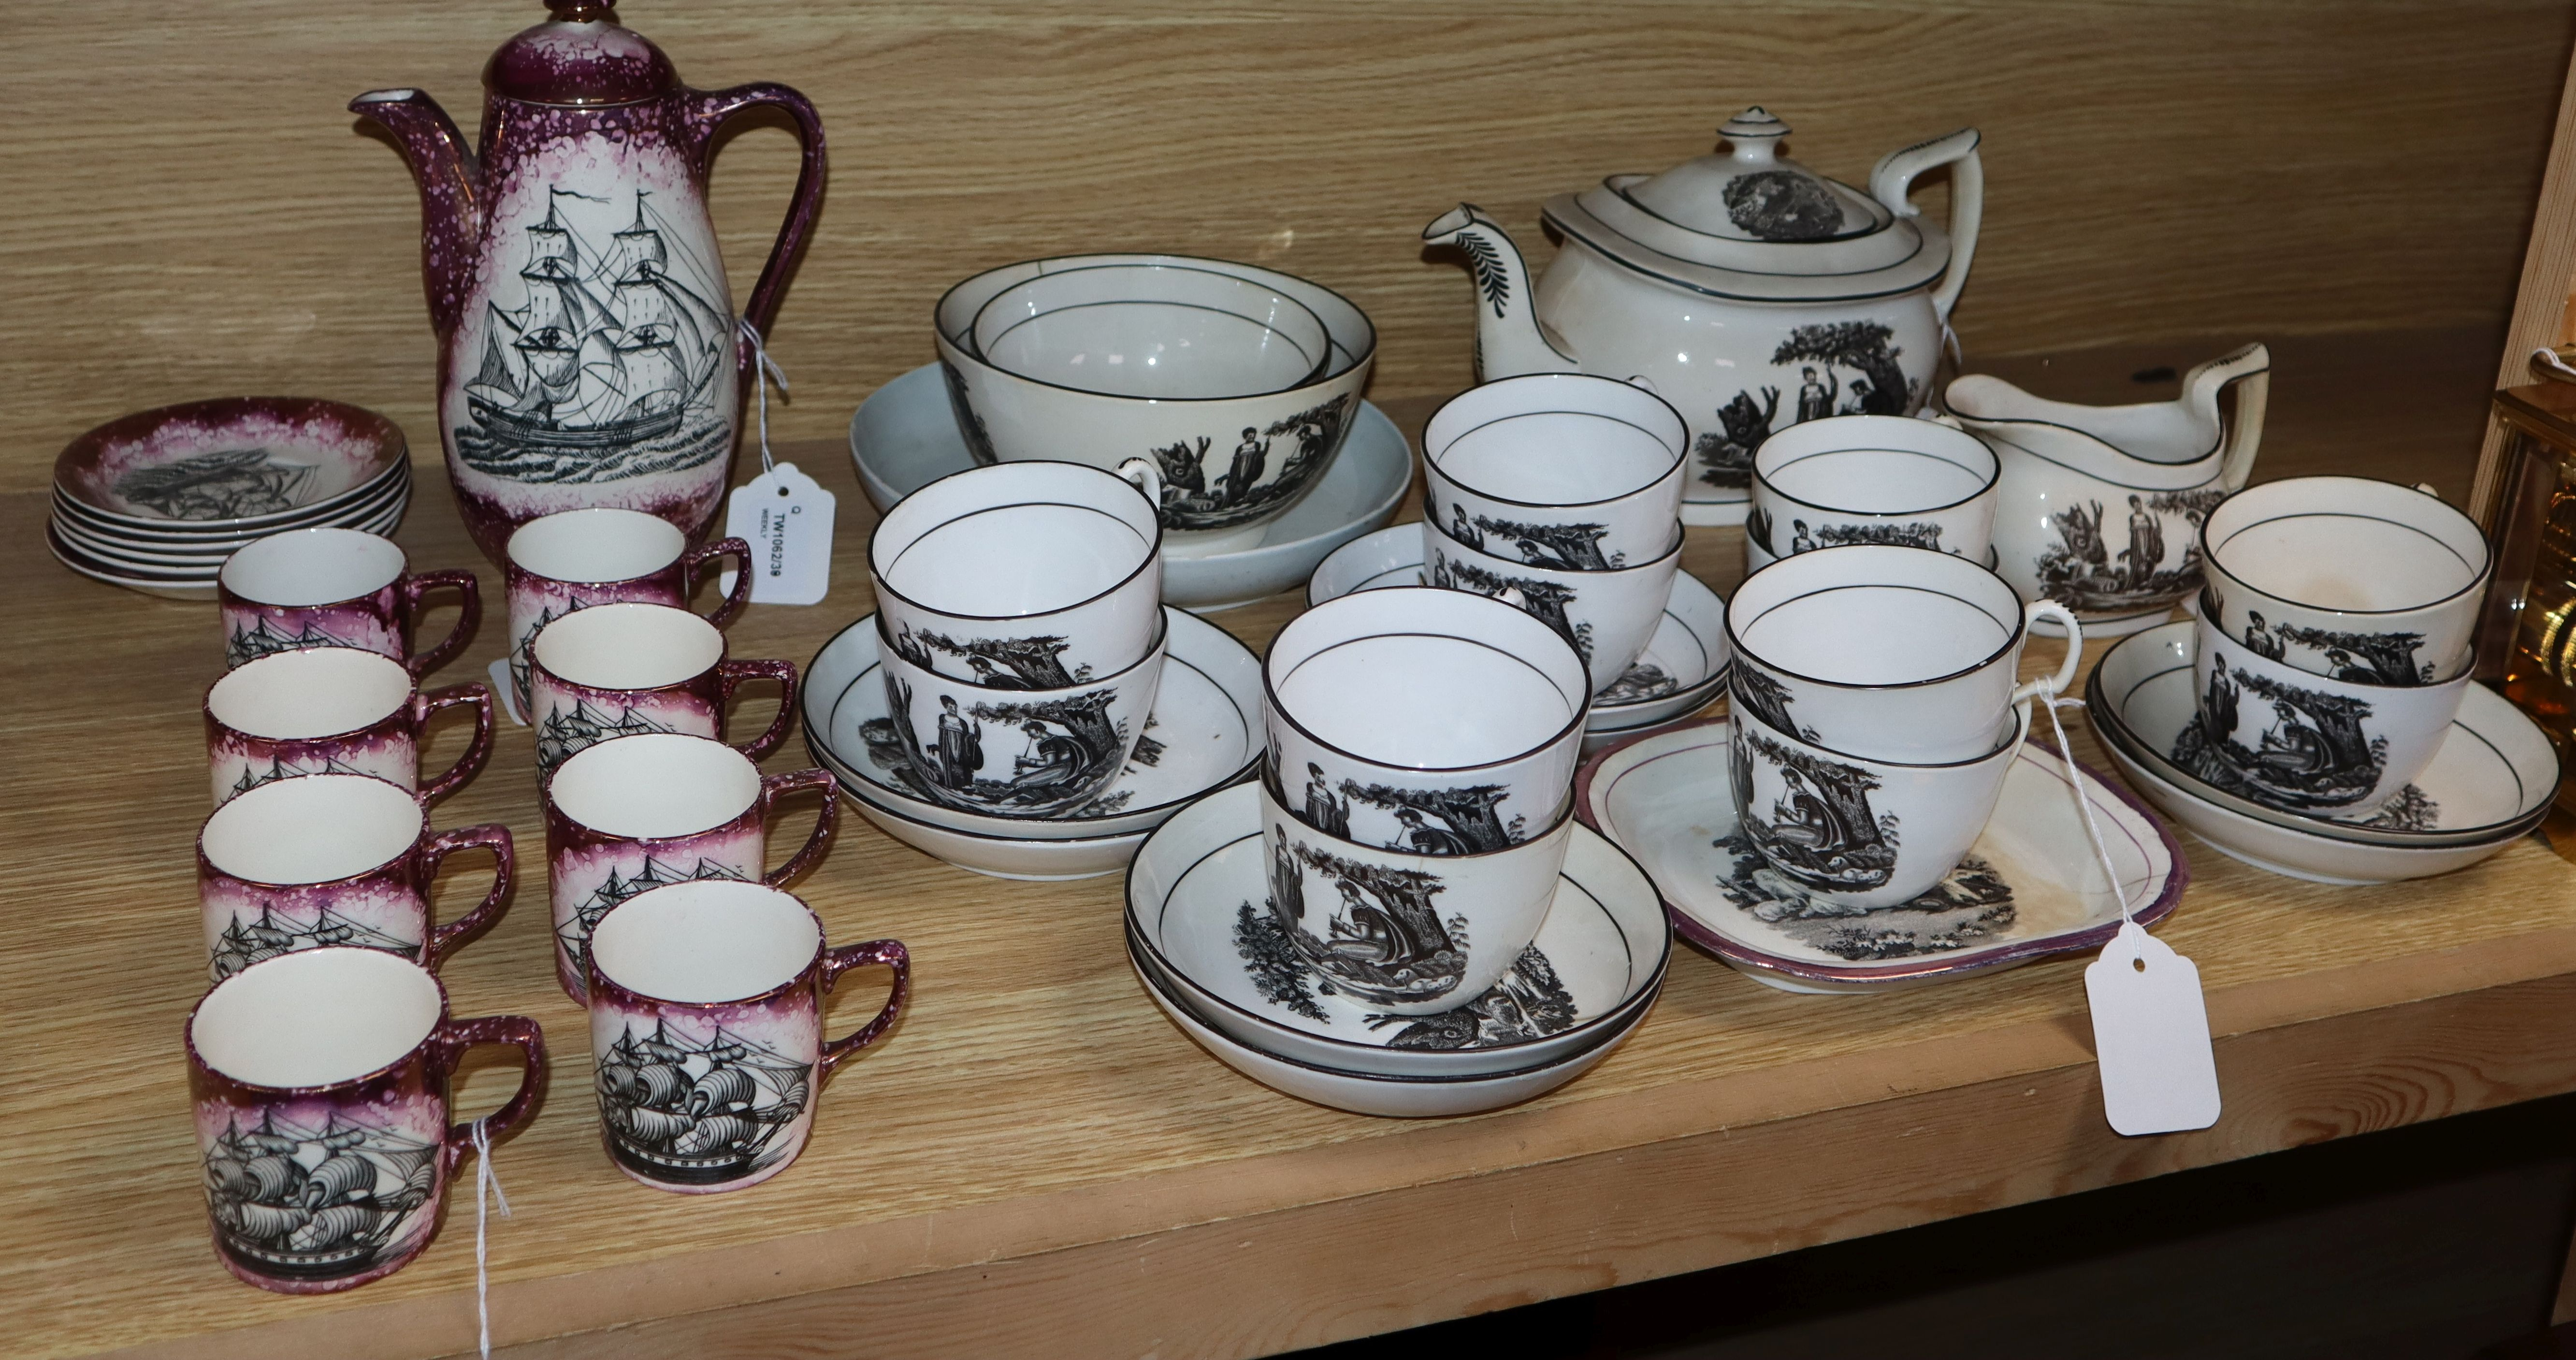 Lot 92 - A collection of English porcelain bat-printed teaware, probably New Hall and a Grays Pottery